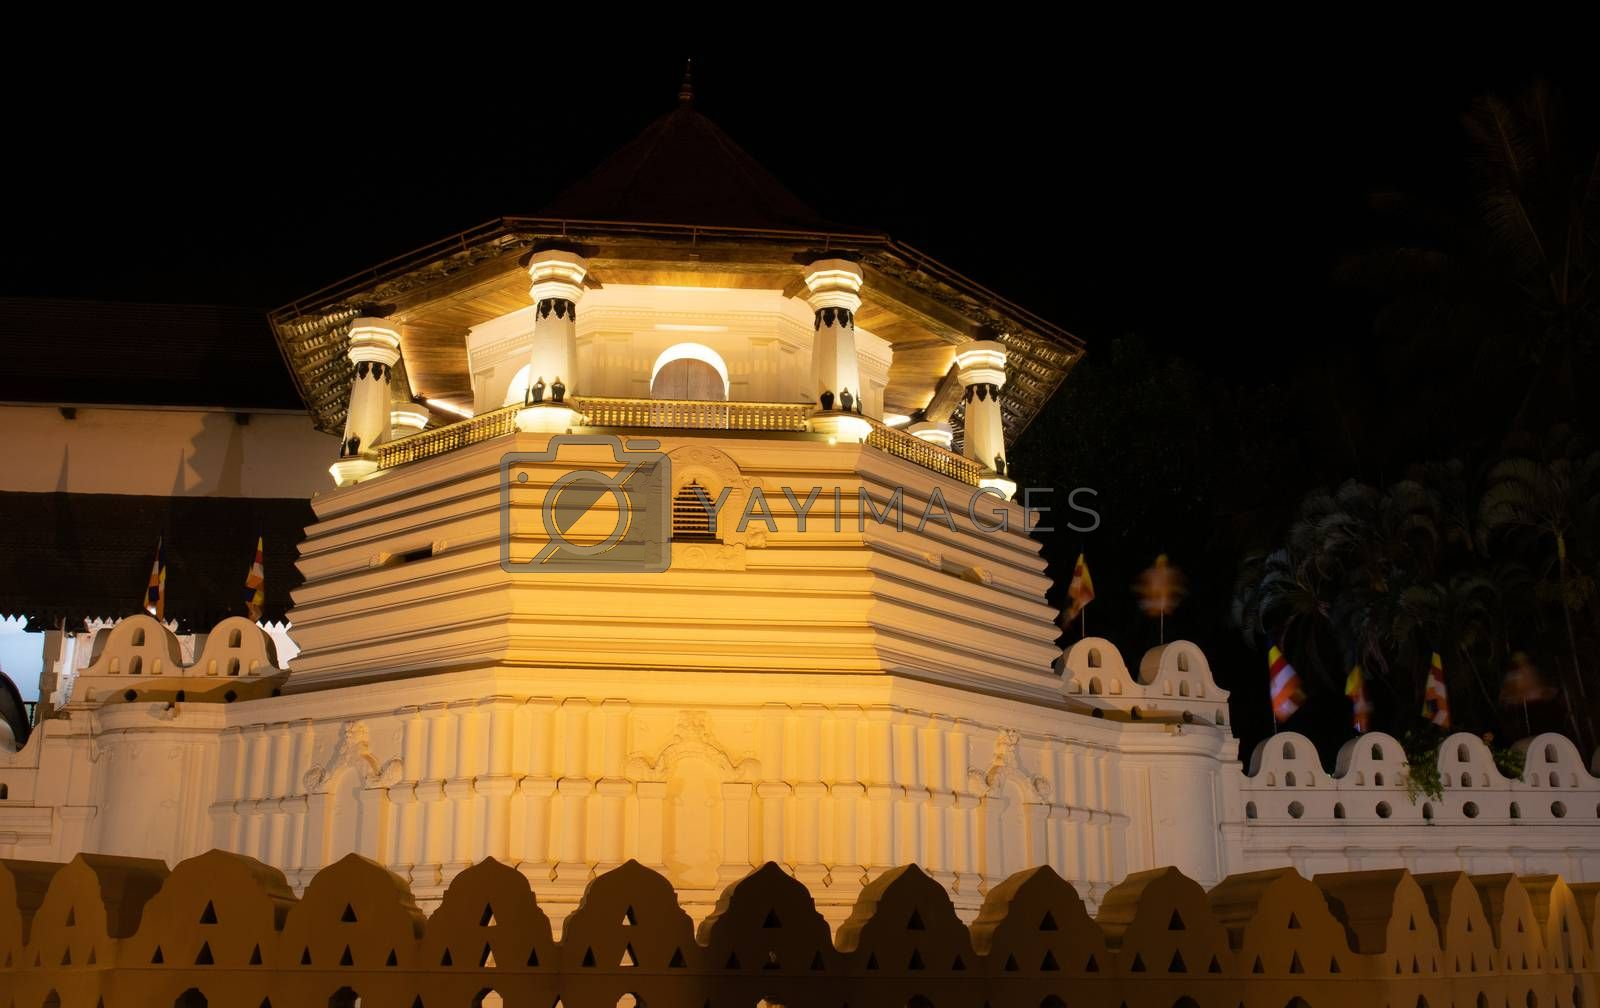 Sri Dalada Maligawa or the Temple of the Sacred Tooth Relic is a Buddhist temple in the city of Kandy, Sri Lanka. It is located in the royal palace complex of the former Kingdom of Kandy, which houses the relic of the tooth of the Buddha.